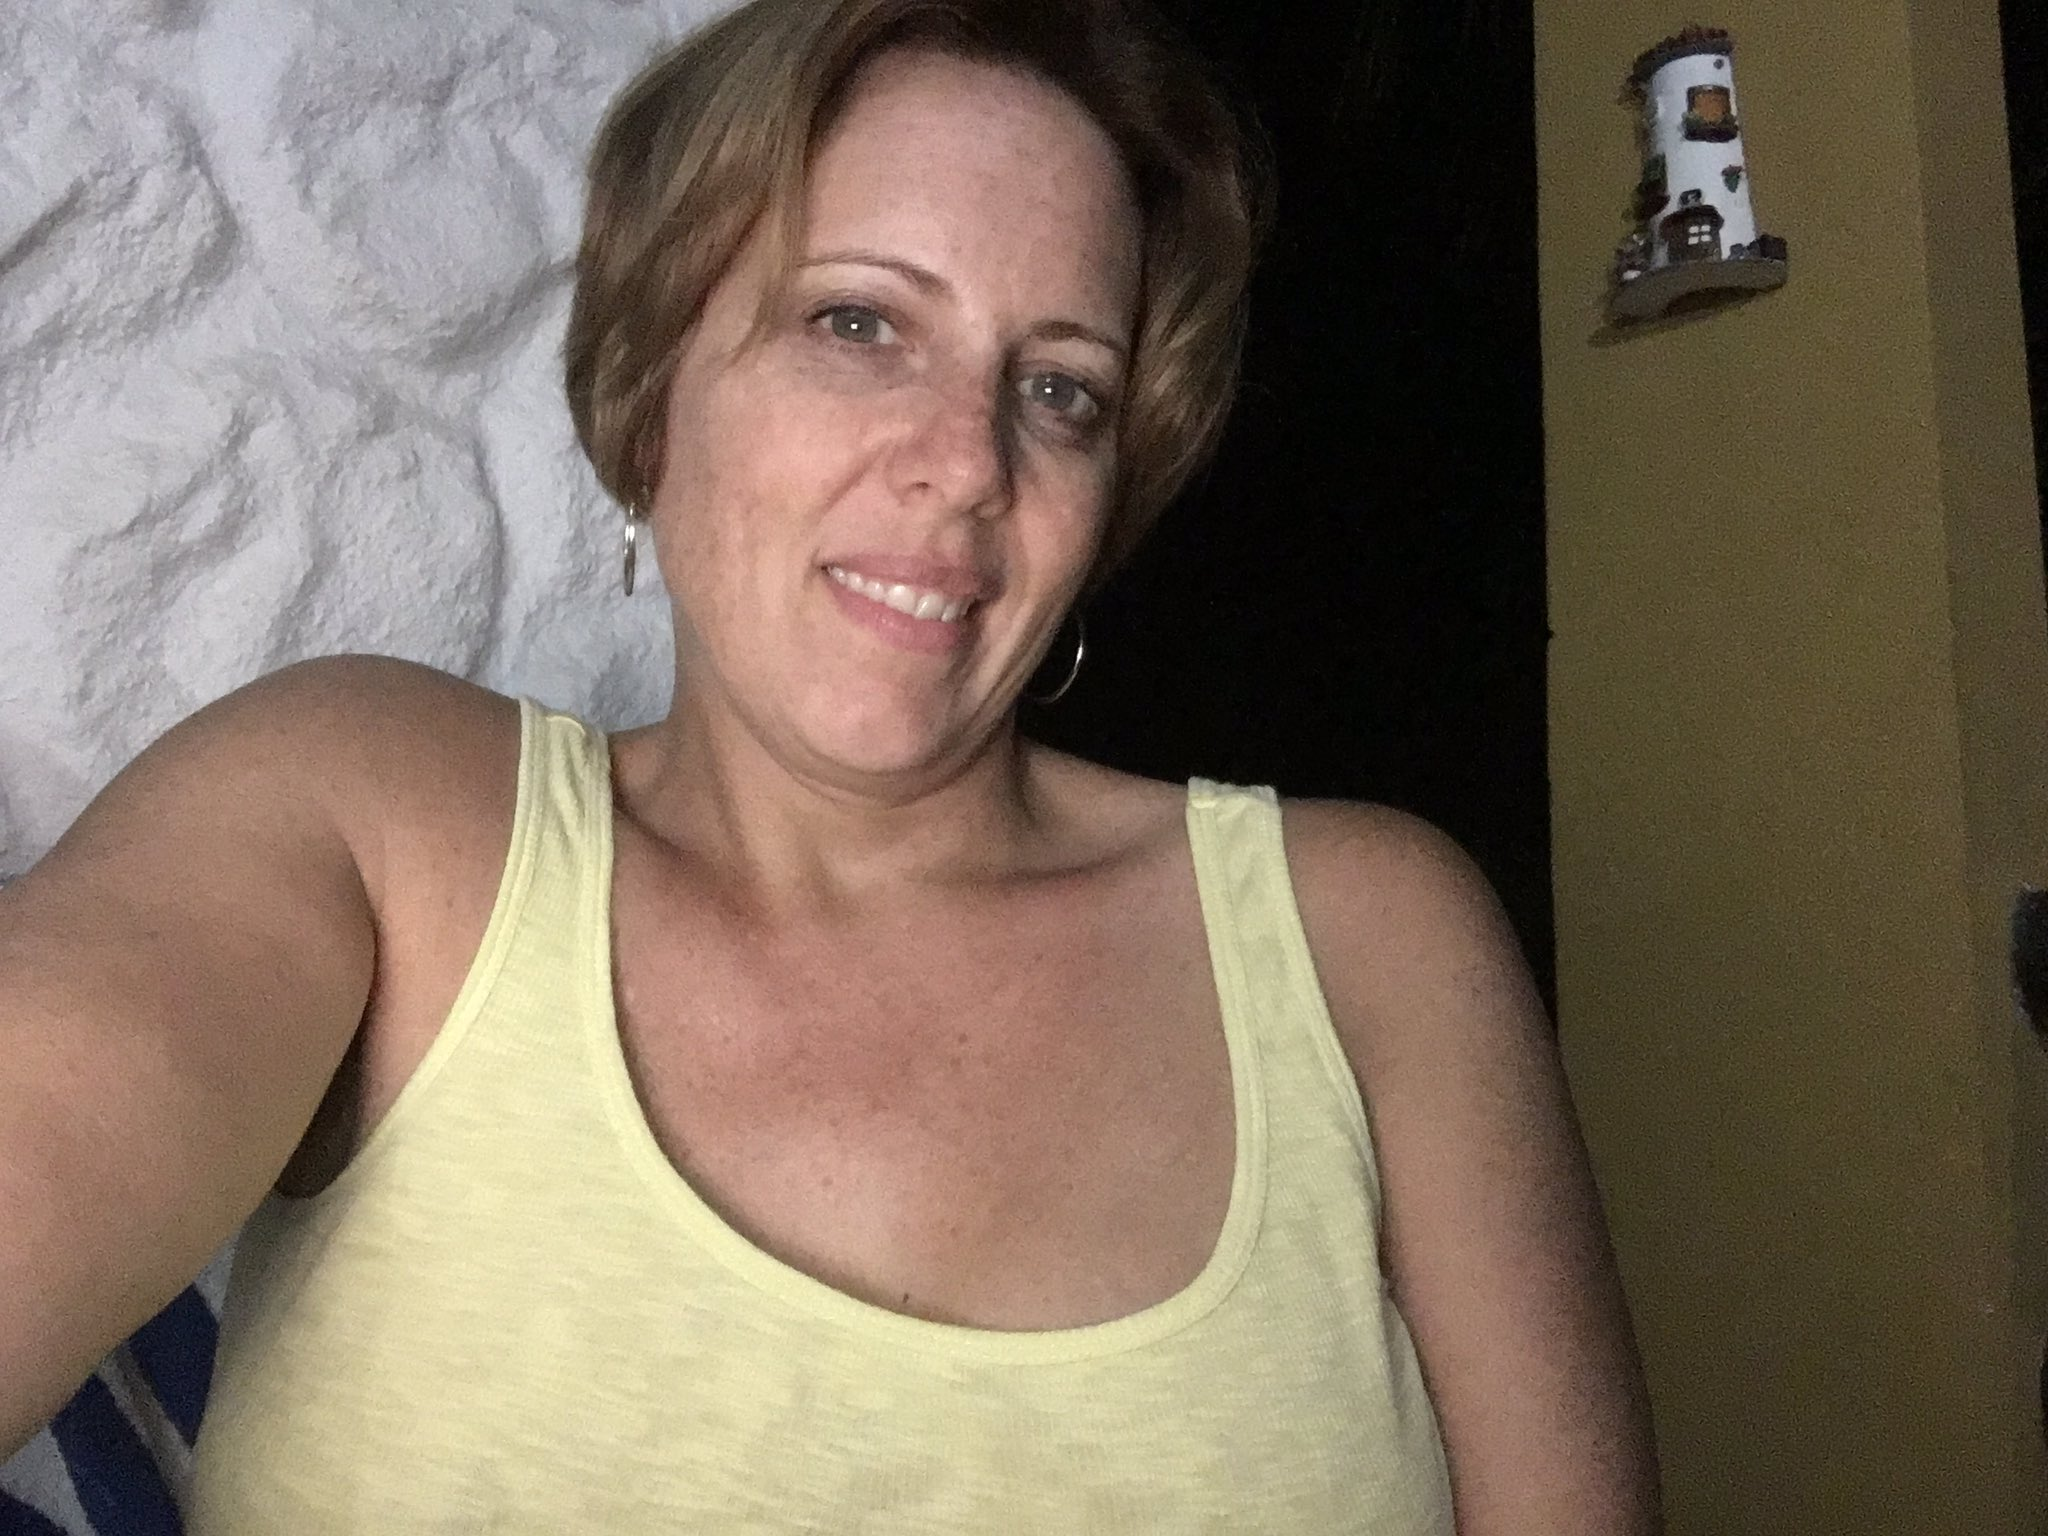 Curvy Claire on Twitter: Finished travelling, holiday